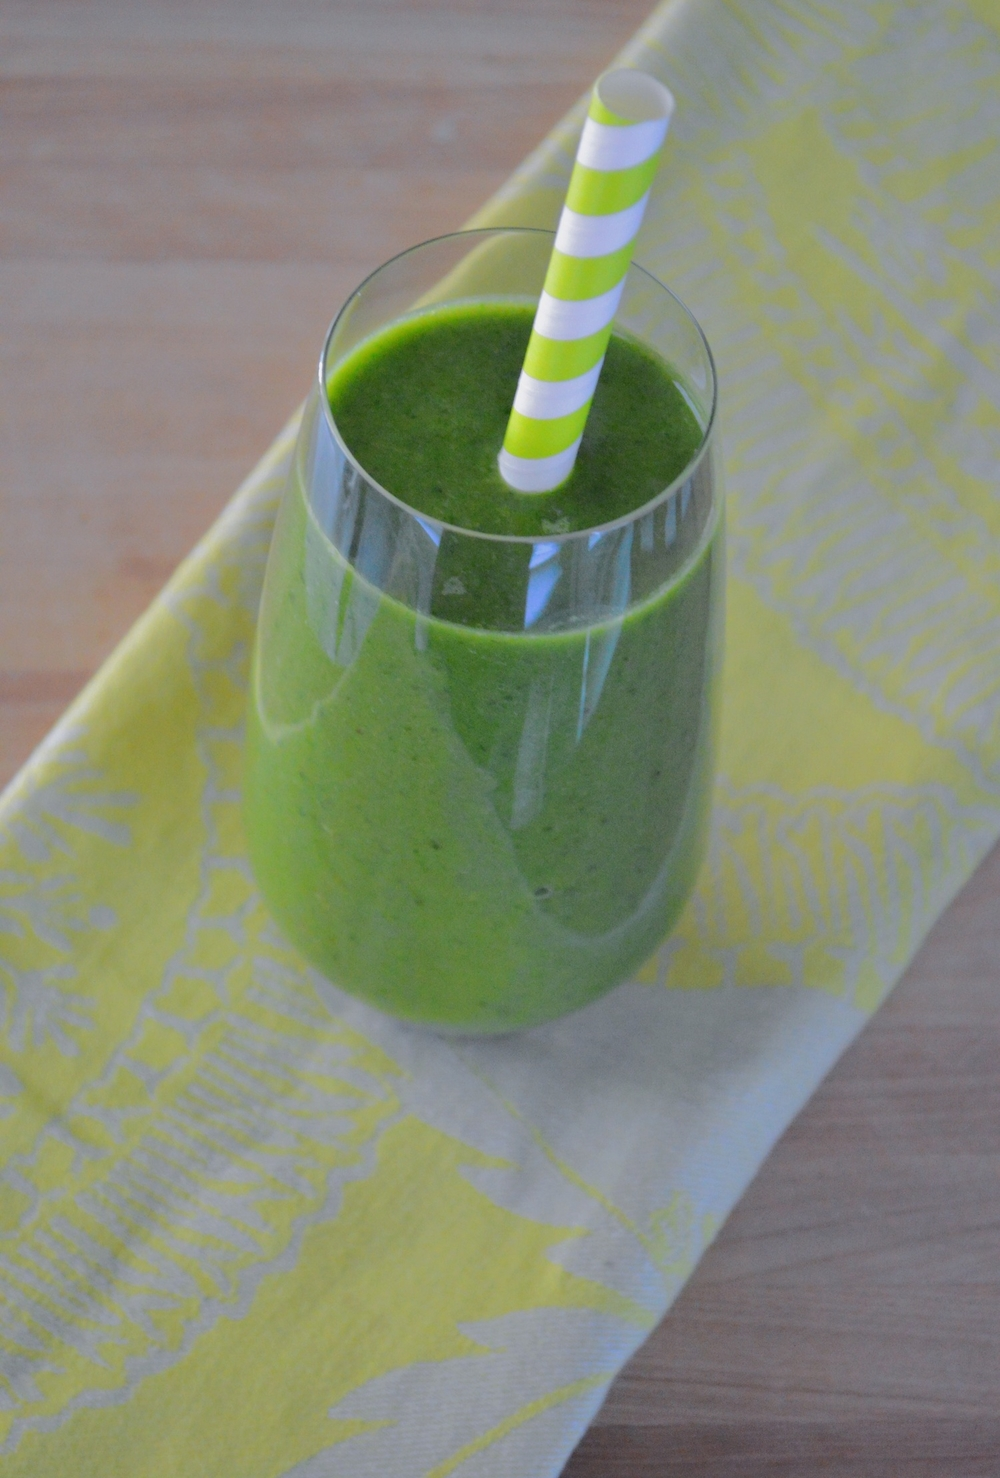 LaurenSchwaiger-Blog-Cucumber-Banana-Spinach-GreenSmoothie.jpg